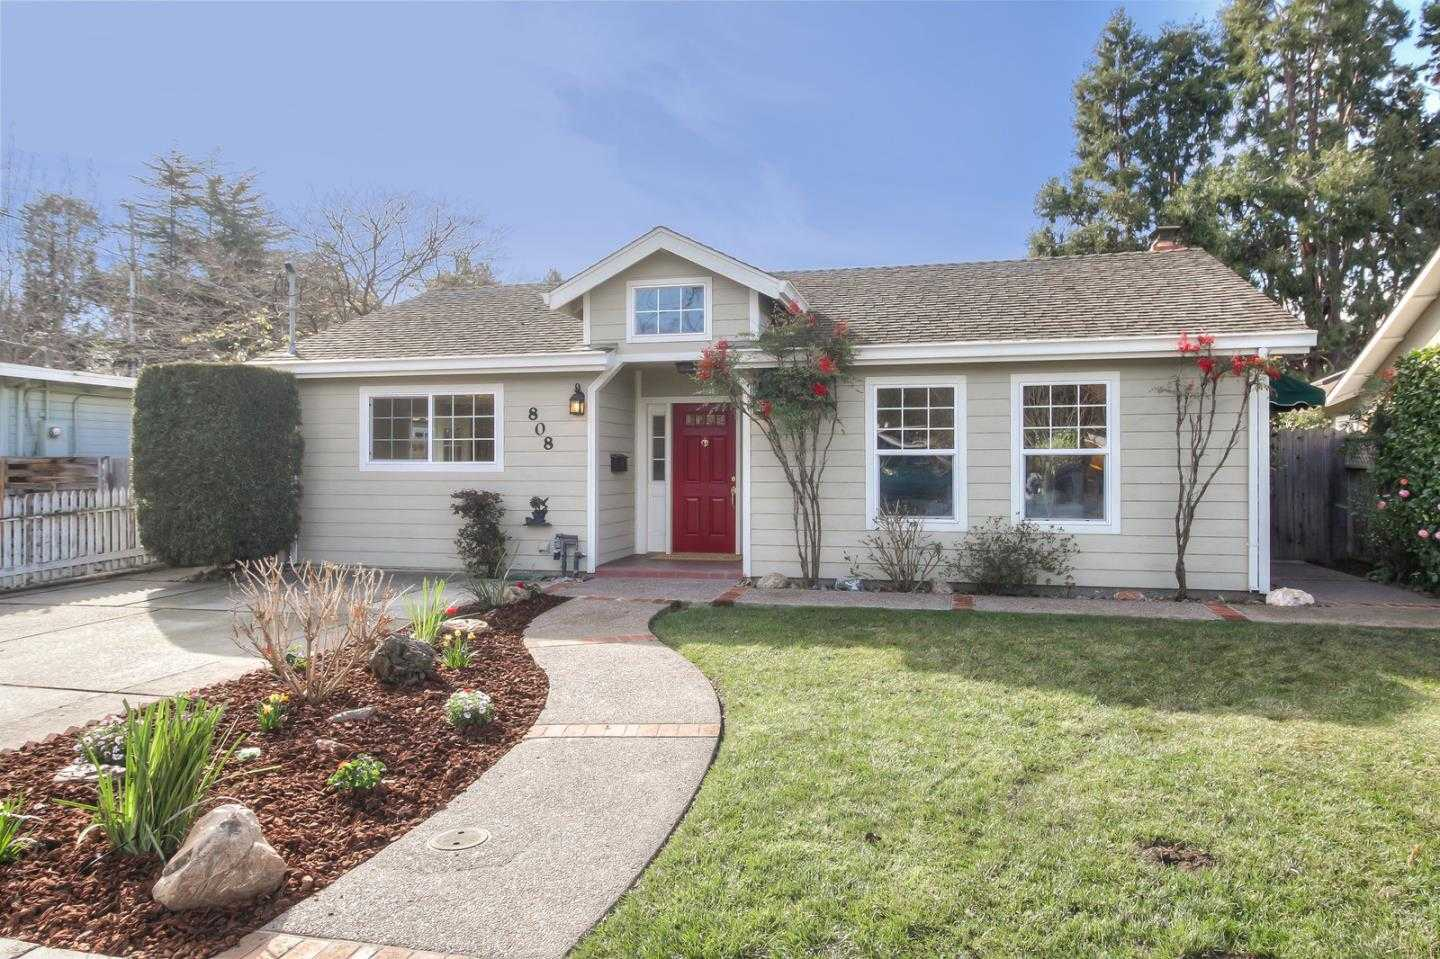 $1,550,000 - 3Br/2Ba -  for Sale in Sunnyvale